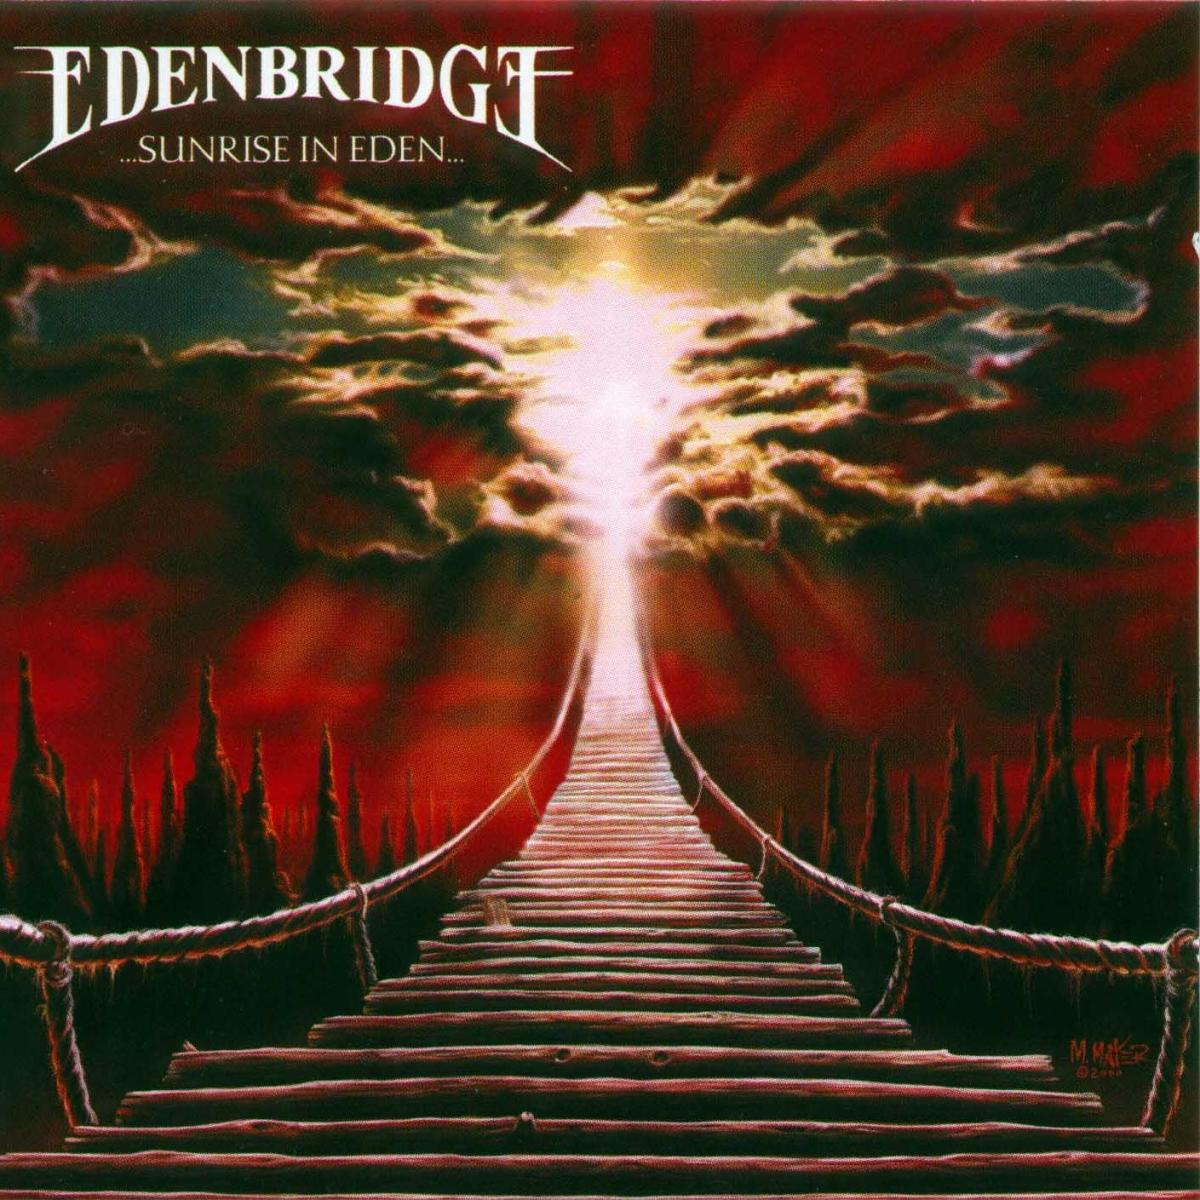 A Review of Sunrise in Eden the Debut Album by Edenbridge Featuring the Powerful Vocals of Sabine Edelsbacher